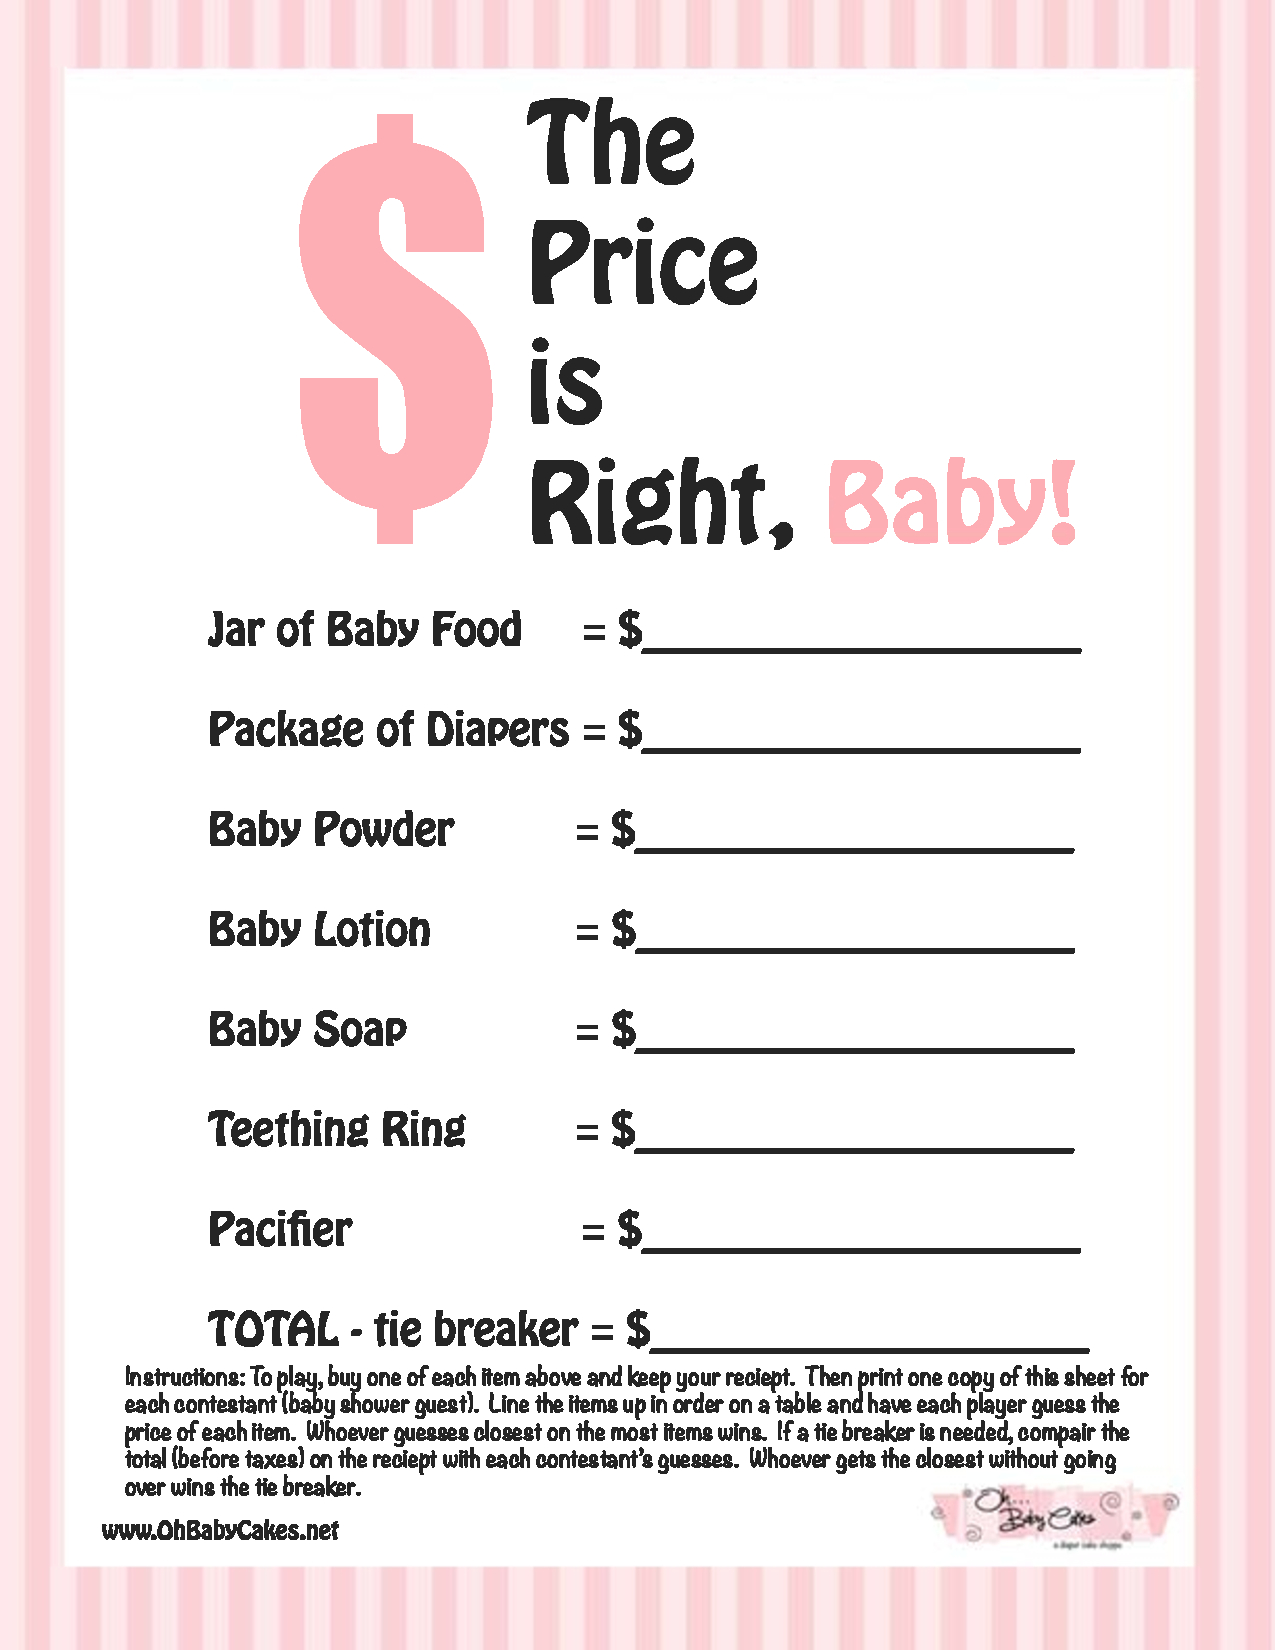 Baby Boy Shower Agreeable Free Printable Baby Shower Games For Large - Free Printable Online Baby Shower Games